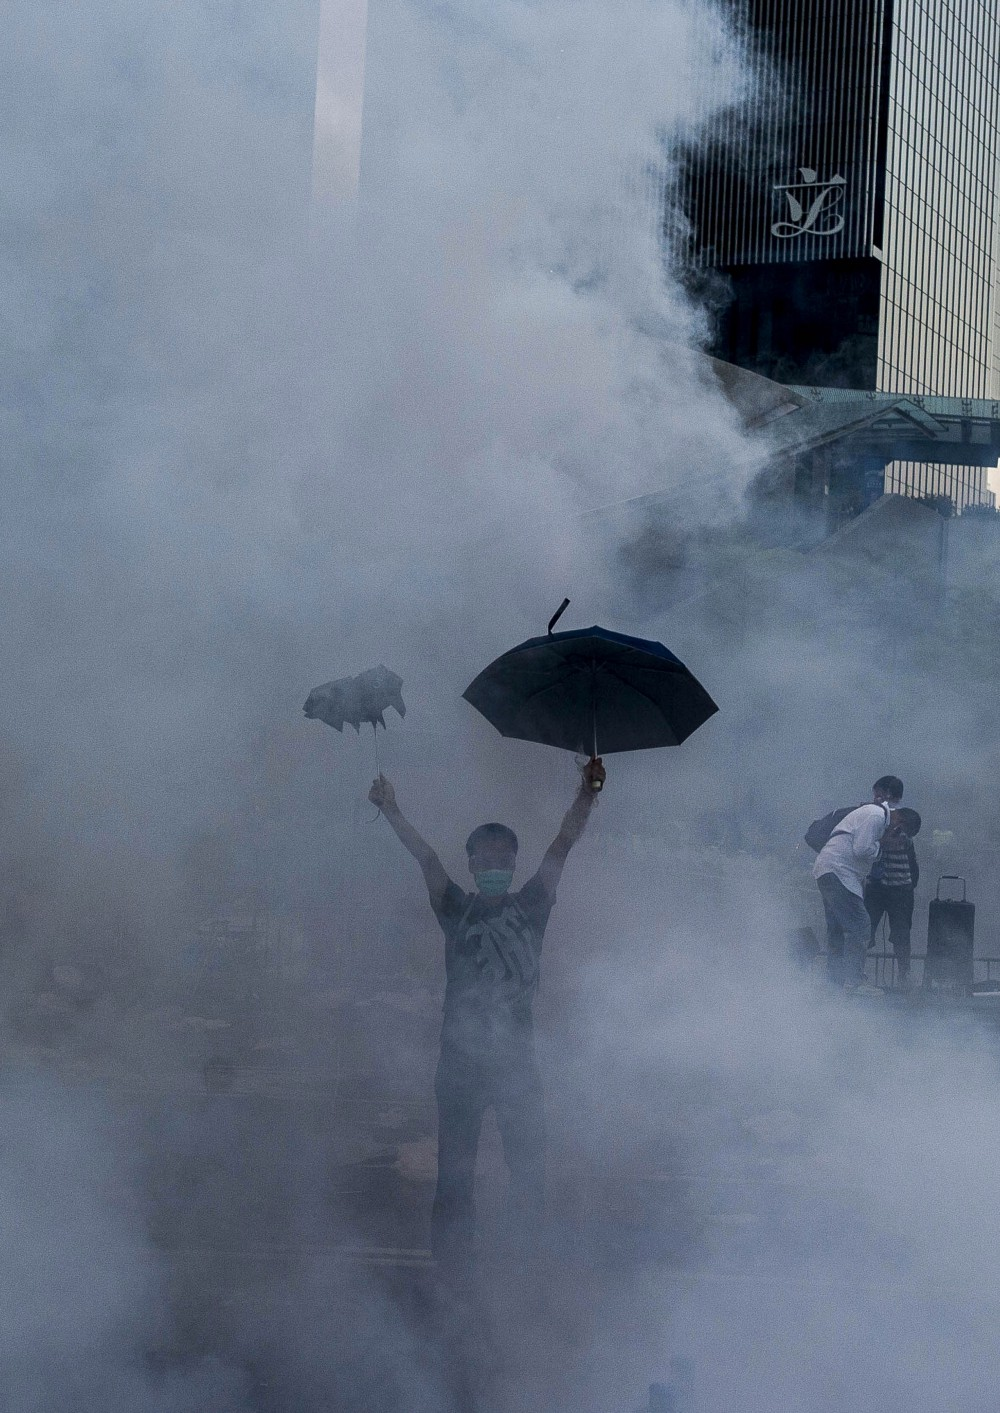 Hong Kong Protestor 2014 Xaume Olleros (AFP/Getty Images)  A pro-democracy demonstrator holds an umbrella after police fired tear gas towards protesters near the Hong Kong government headquarters, in a dramatic escalation of the Umbrella Revolution protests.